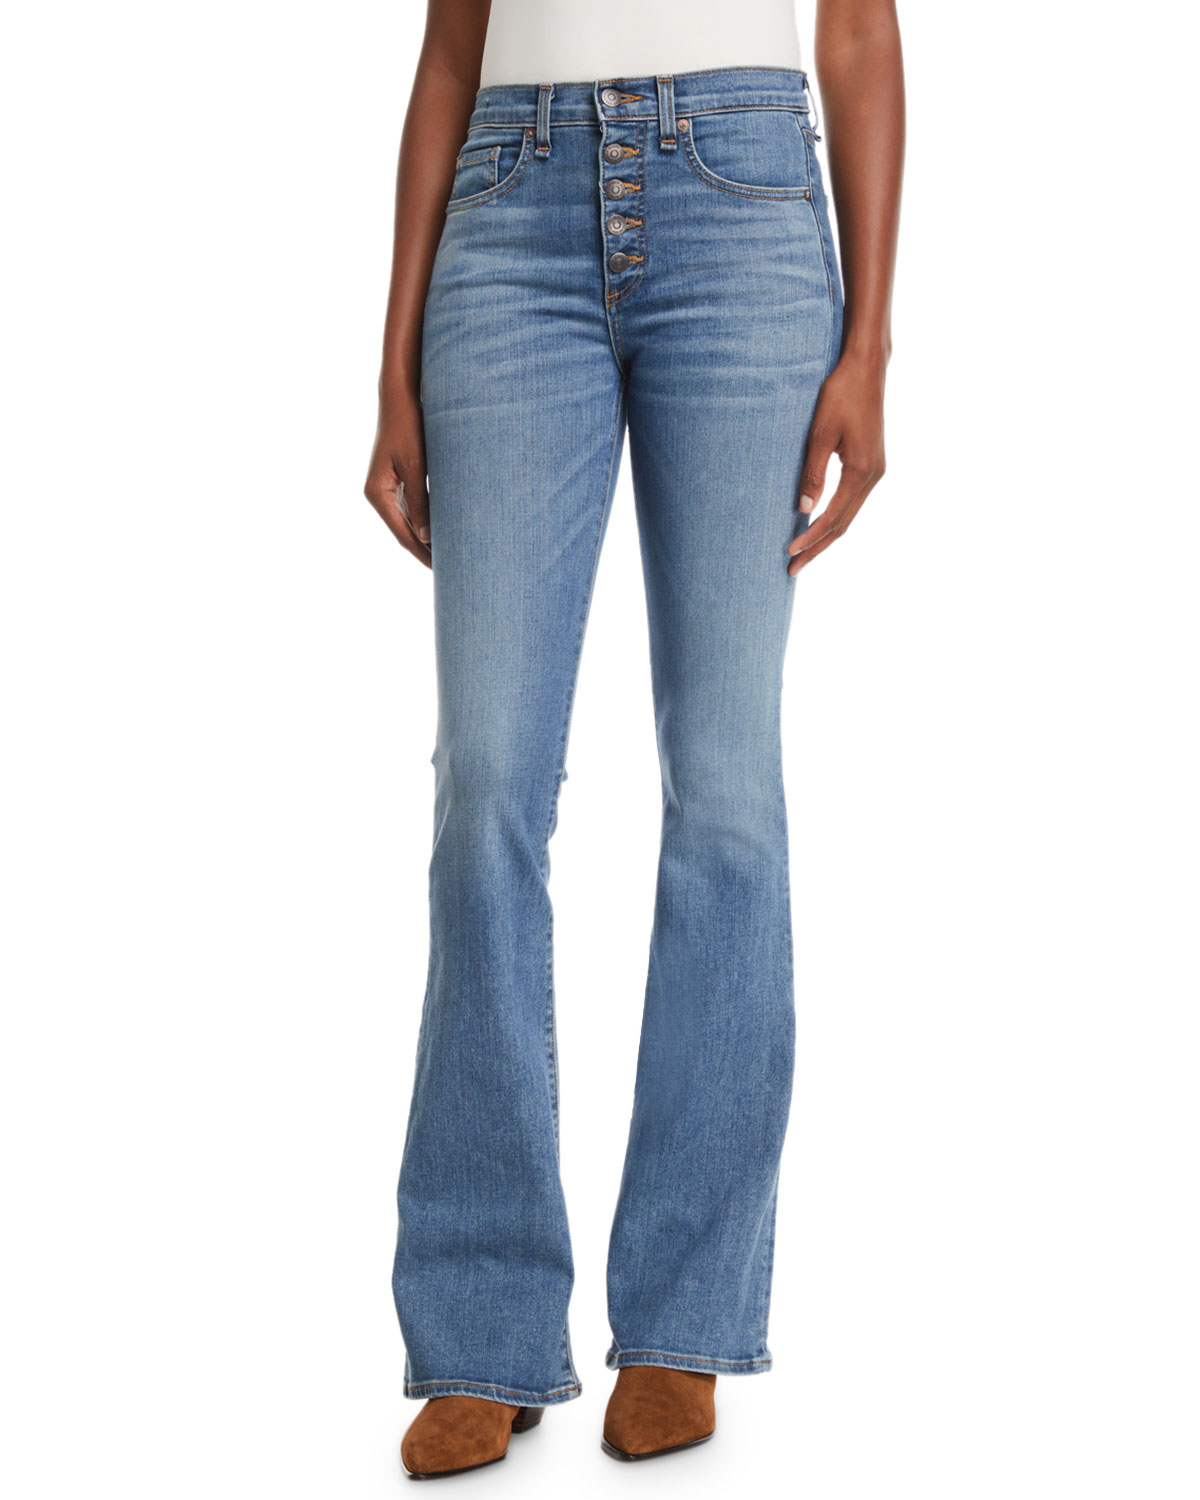 ff20d45c11 Veronica Beard Beverly Skinny Flare Jeans w  Button Fly